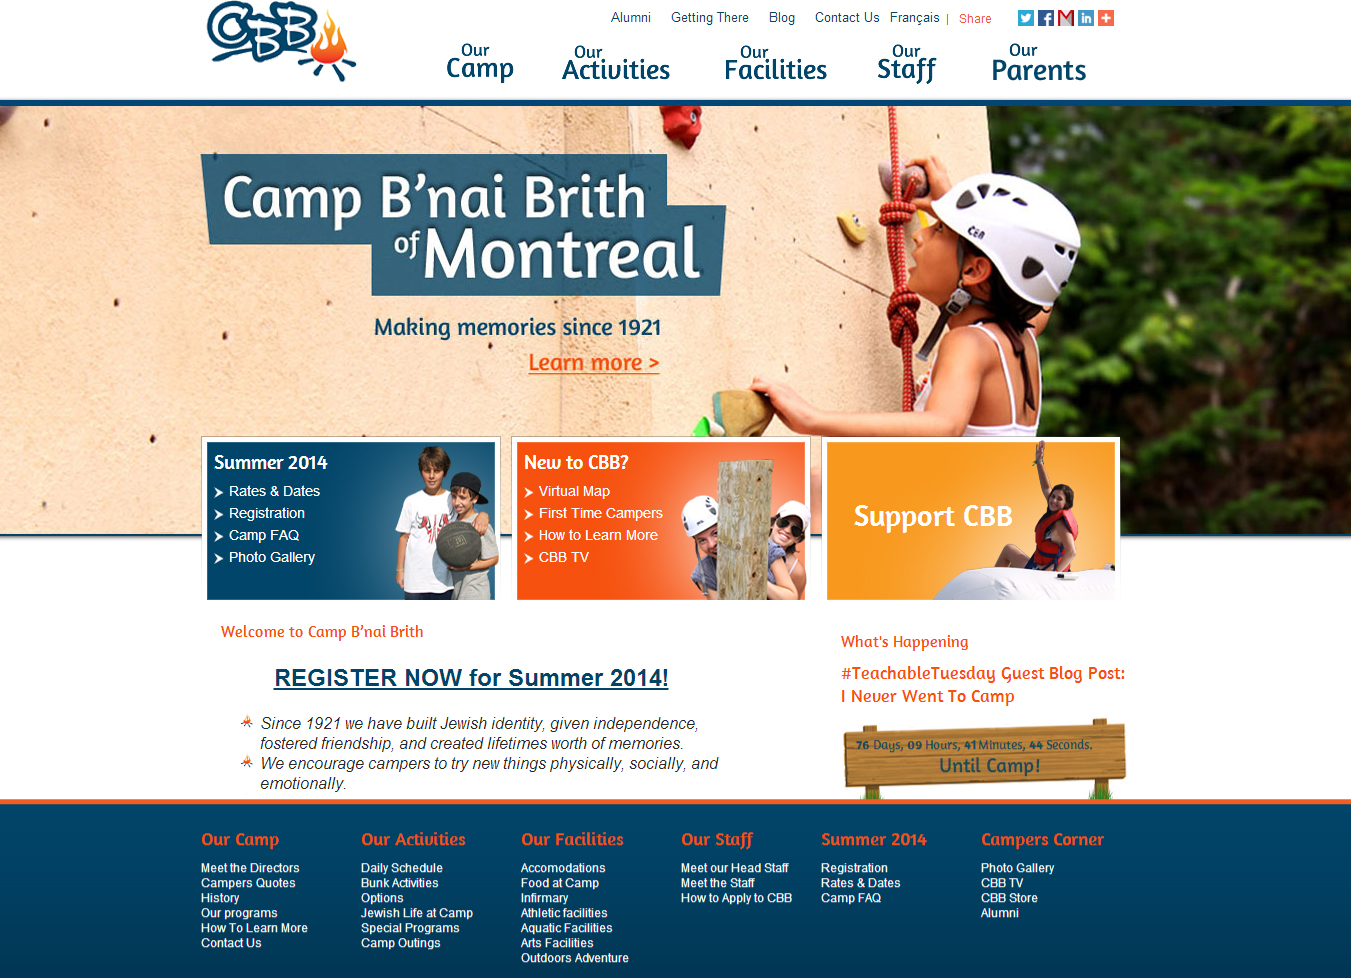 Camp B'nai Brith